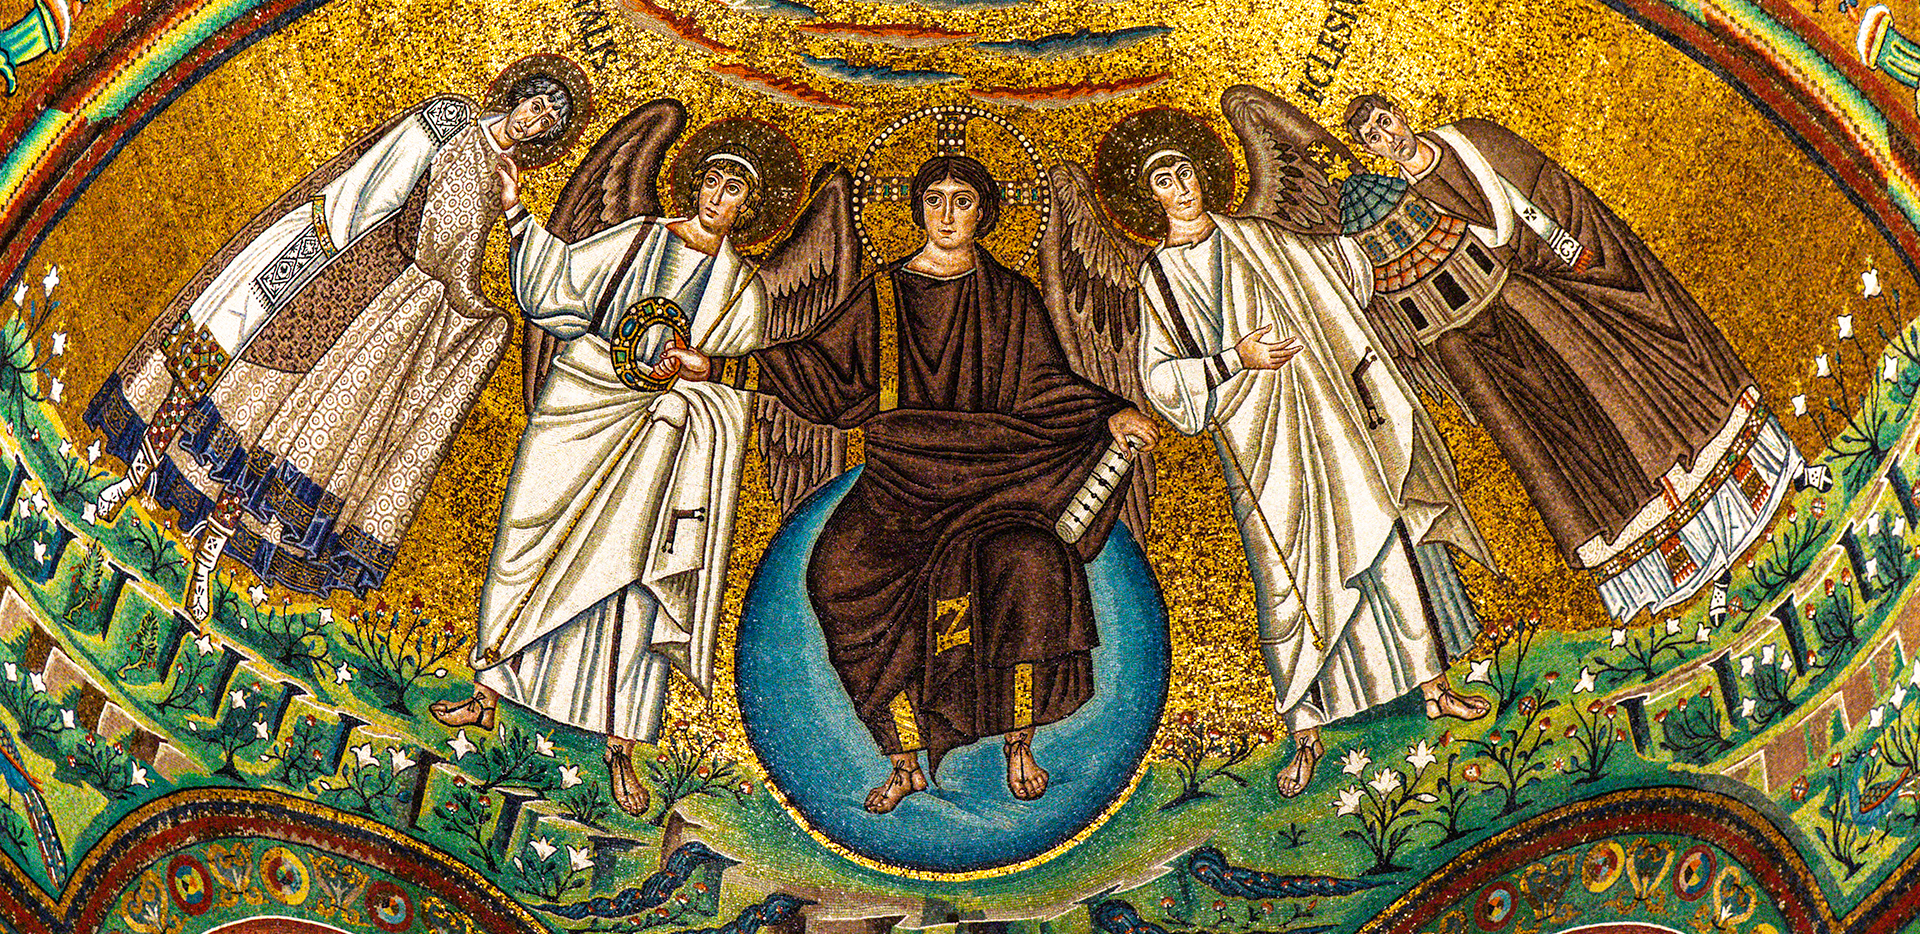 Basilica di San Vitale - Mosaic of the Apostles